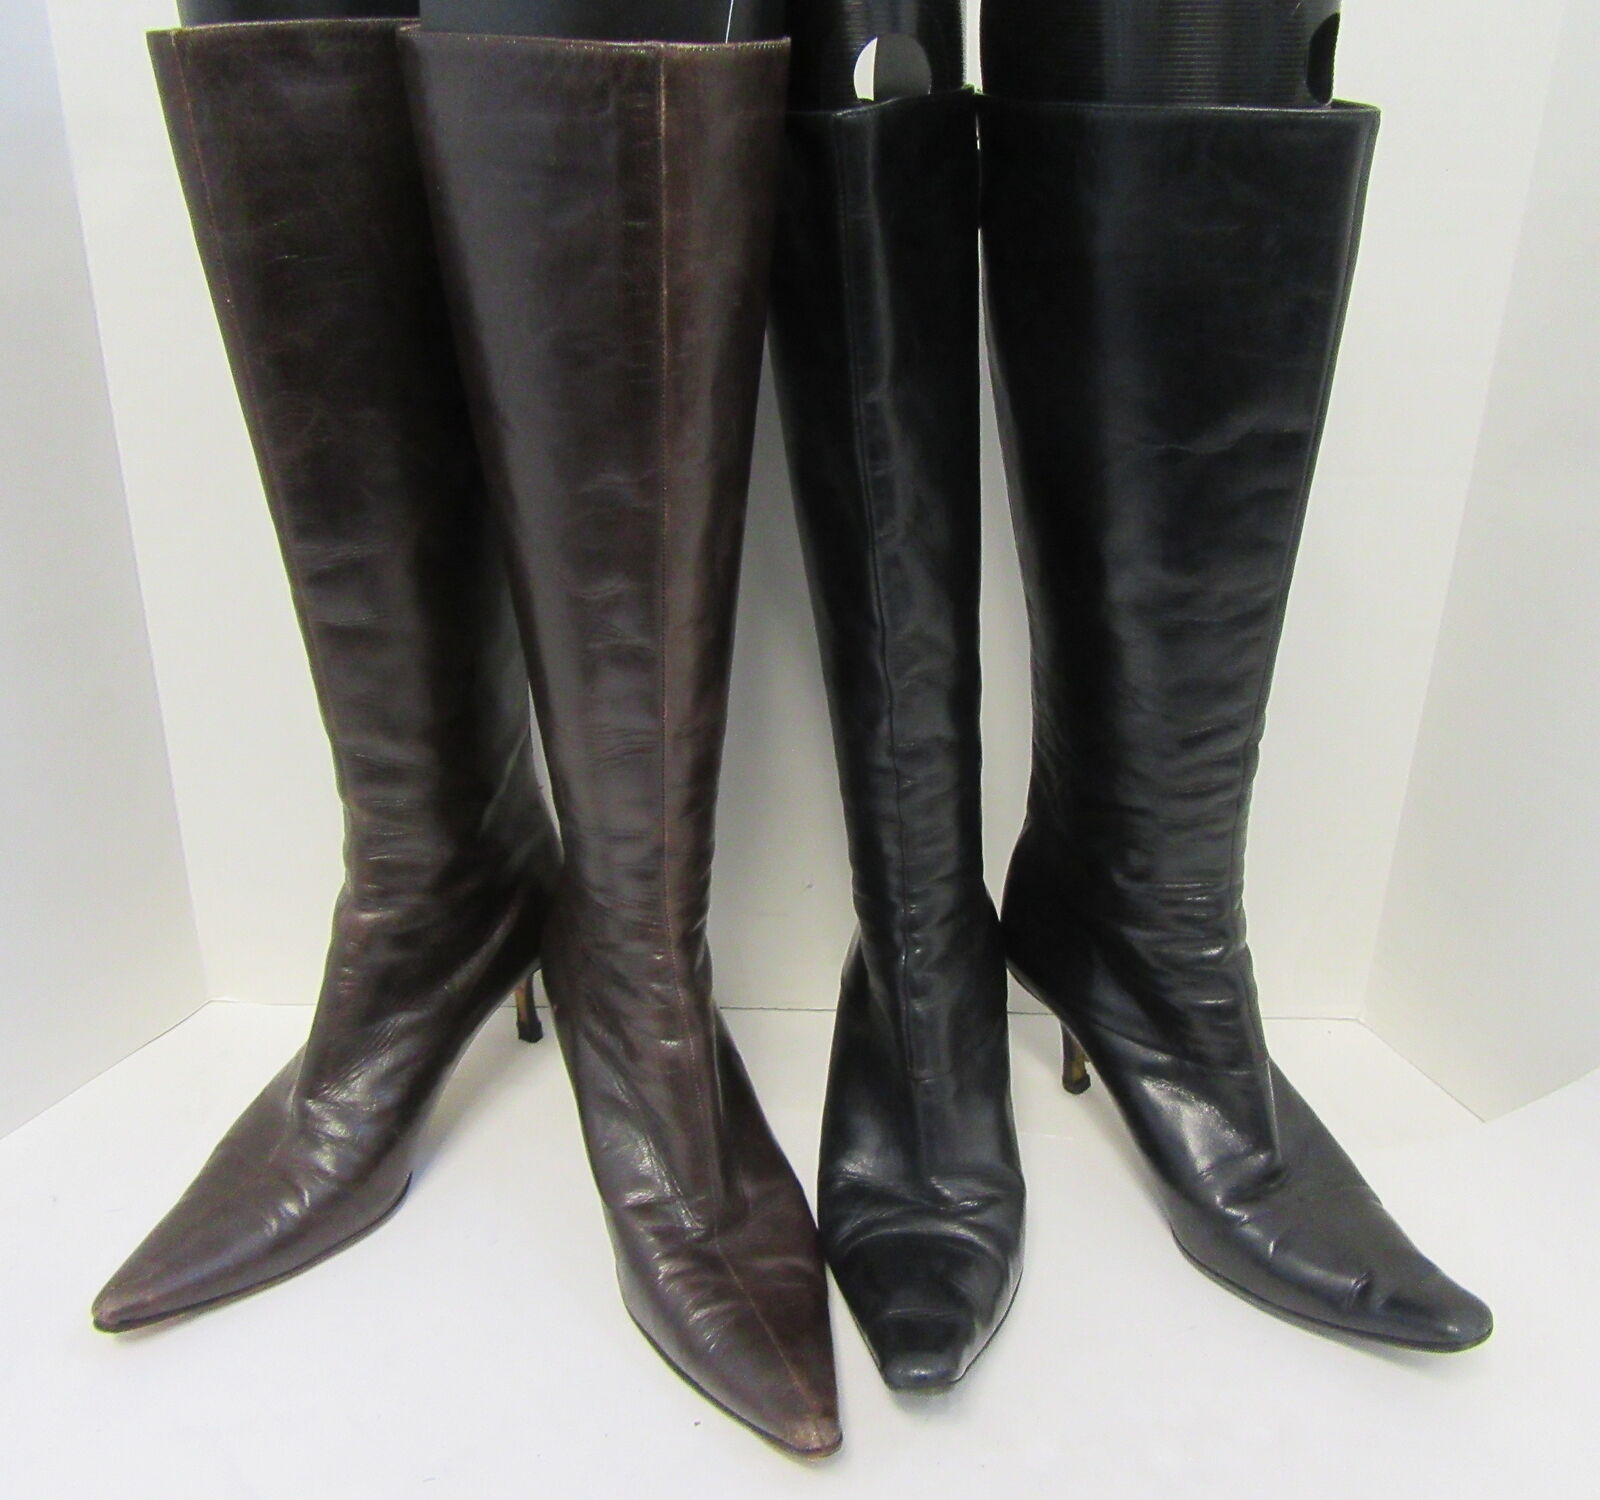 JIMMY CHOO Lot of 2 Black and Brown To-the-Knee Kitten Heel Boots Size 36 37